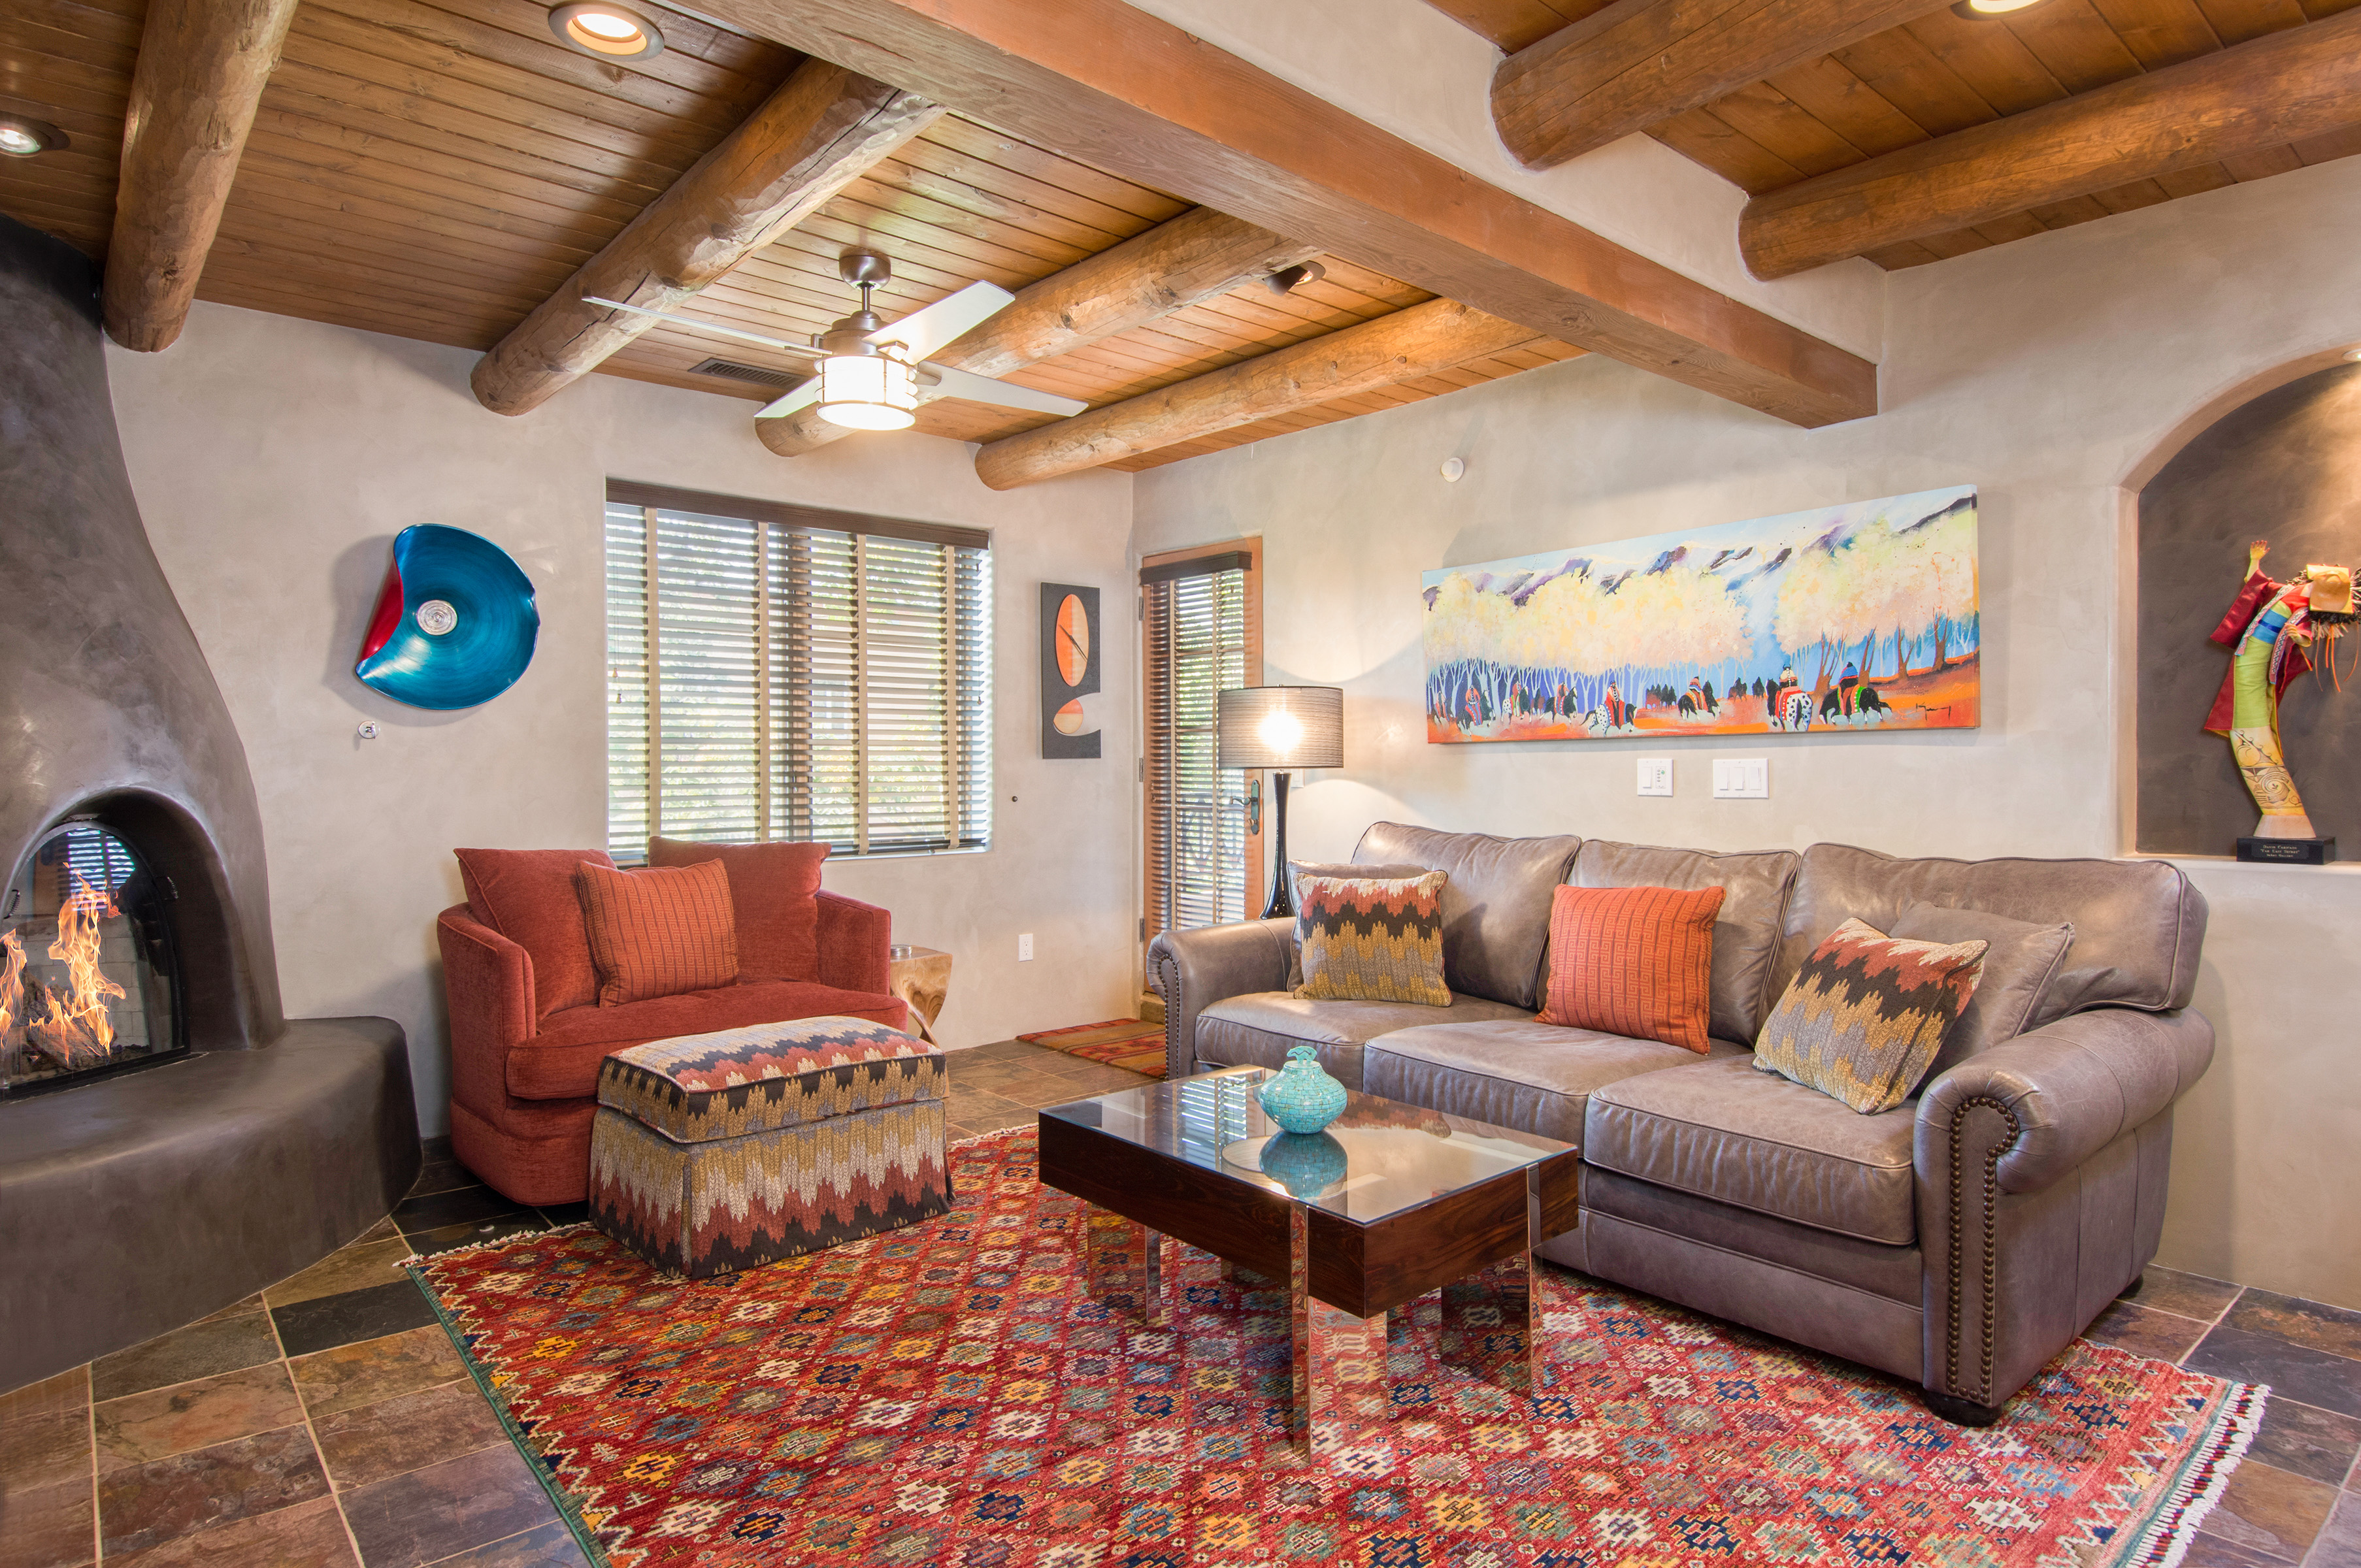 Santa Fe NM Vacation Rental Welcome to Santa